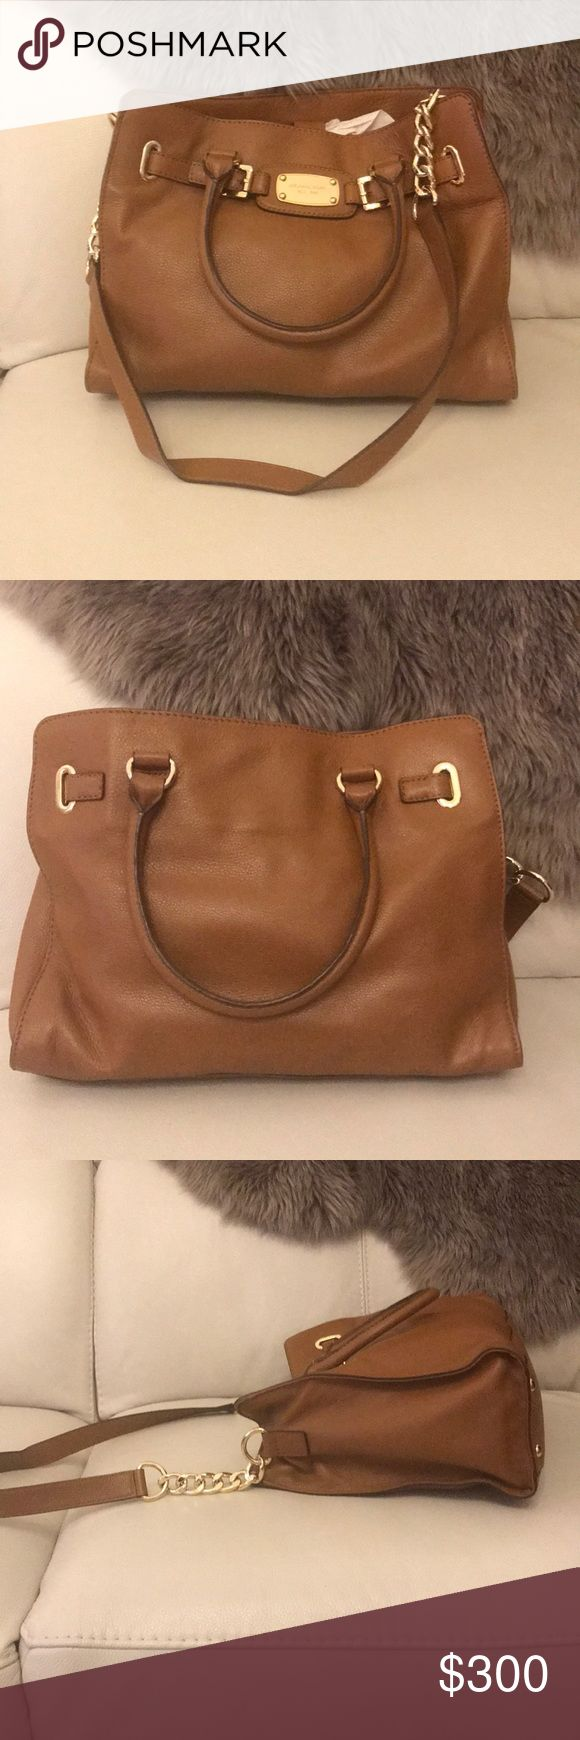 Michael Kors authentic soft leather bag Brown shoulder strap. Like new, barely used. No rips, stains, tears. Michael Kors Bags Shoulder Bags